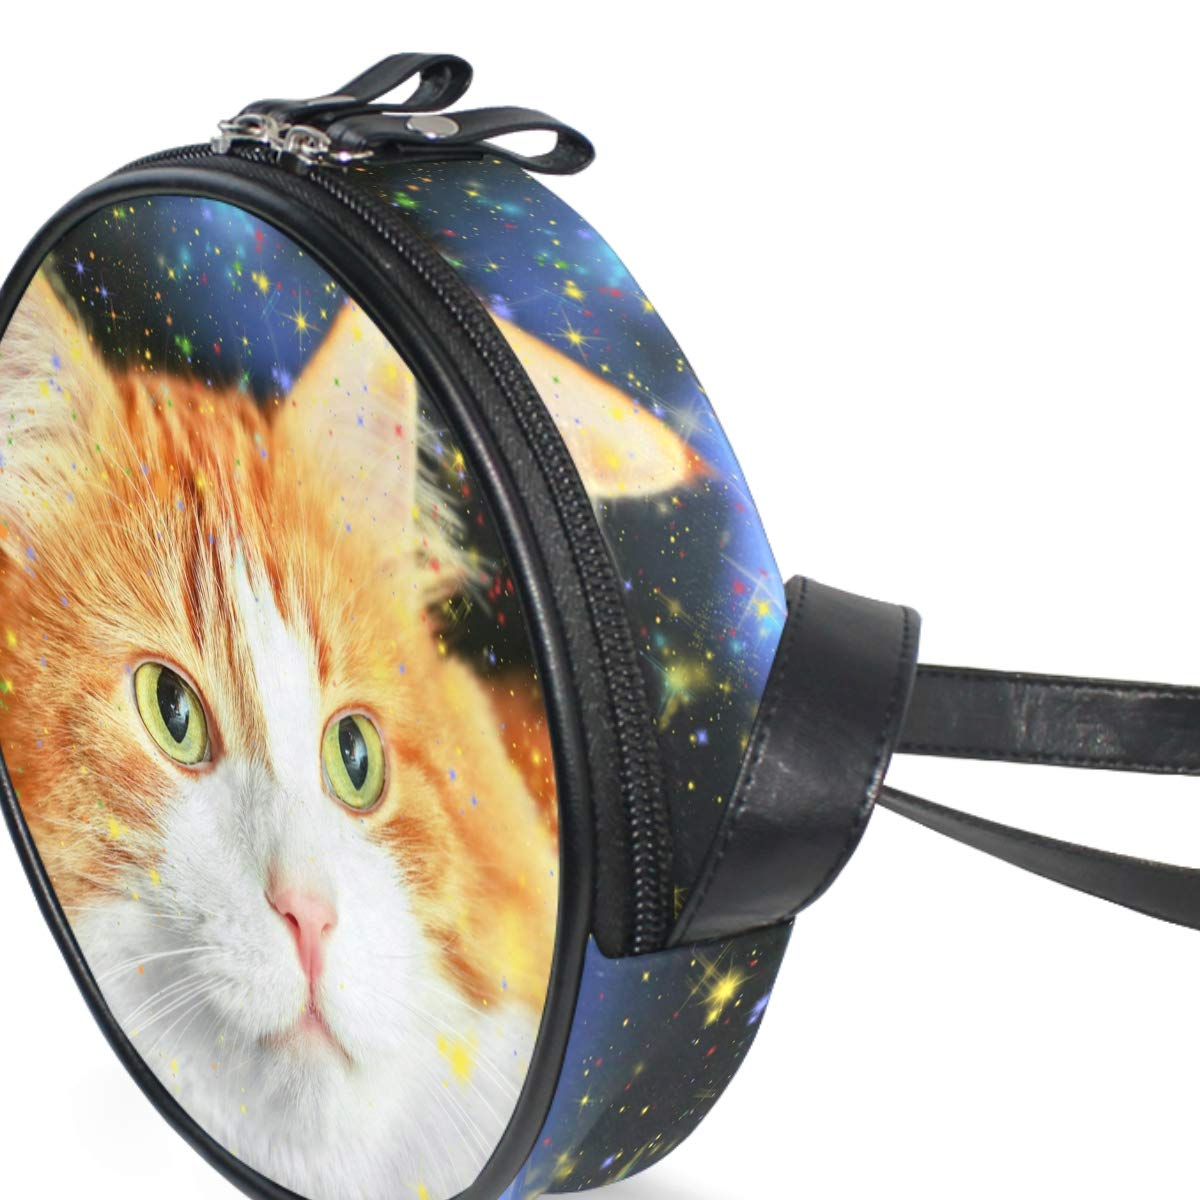 Cute Cat and Stars Small Round Canvas Crossbody Messenger Bags for Women